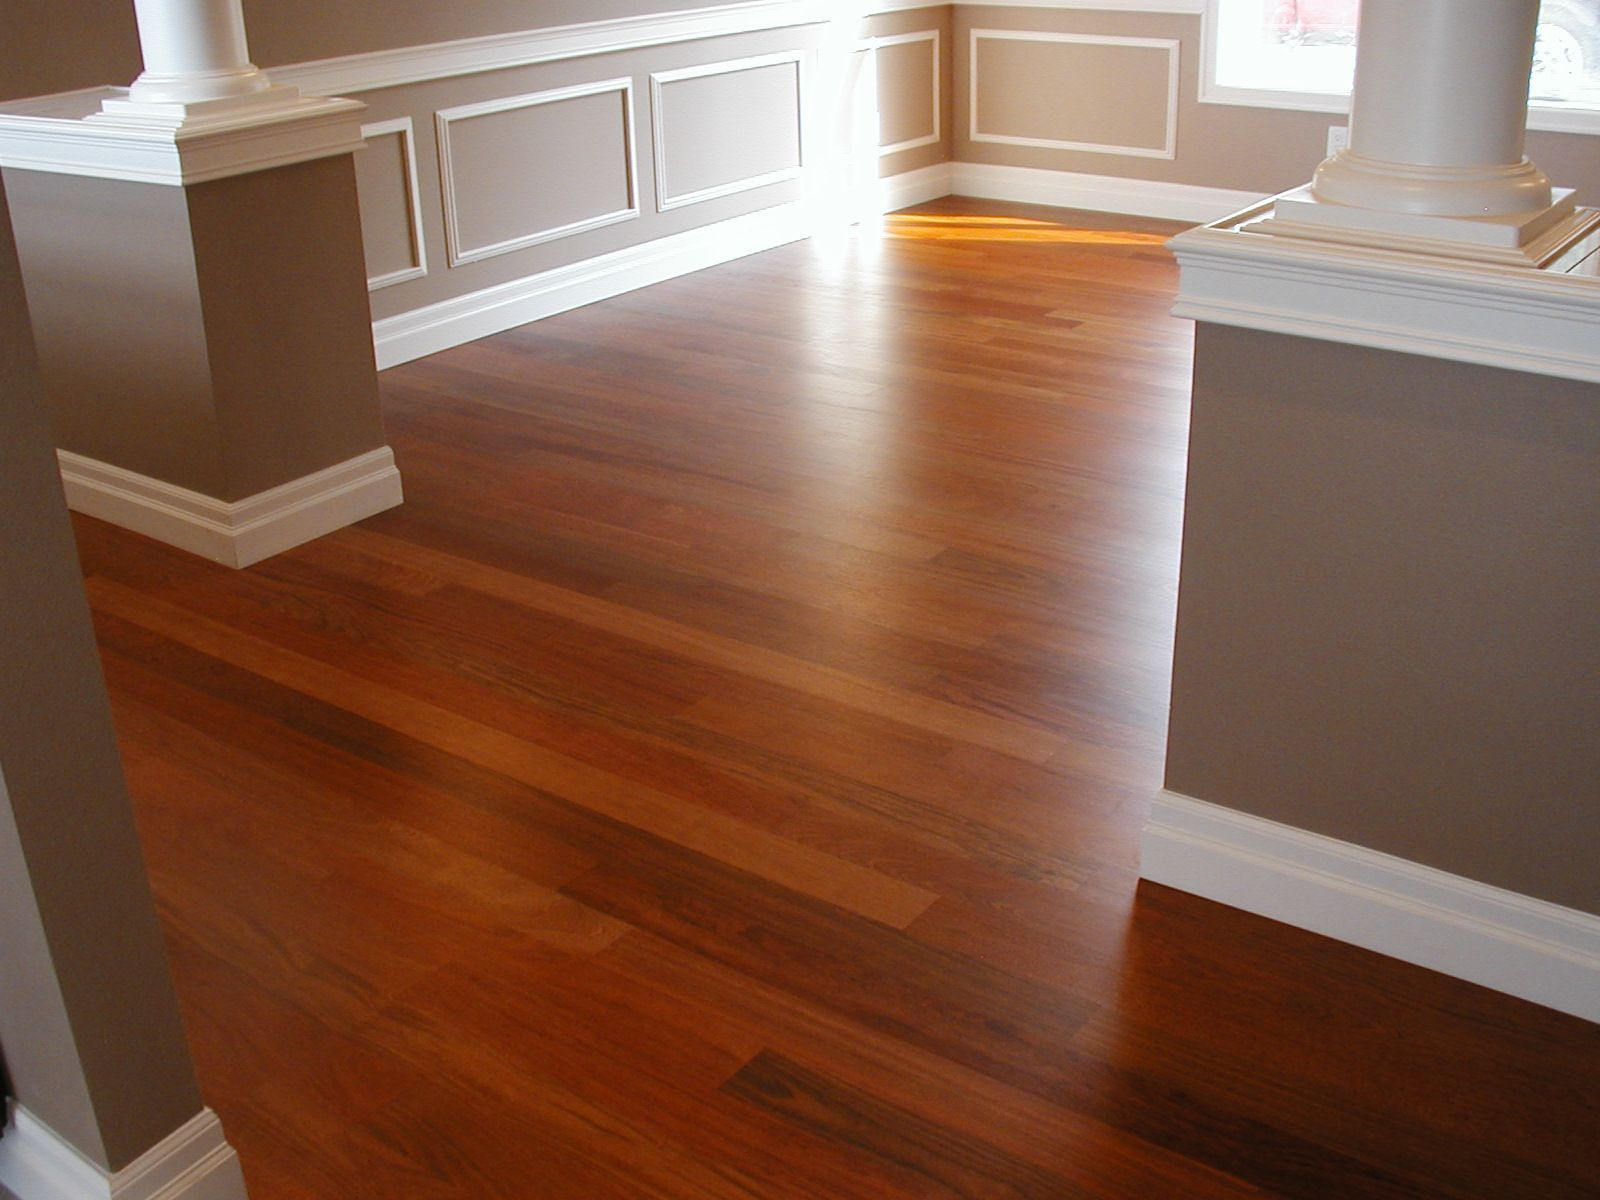 hardwood floor refinishing san francisco ca of hardwood floors san francisco sandblasted 2 x 4 and brick floor in hardwood floors san francisco brazilian cherry floors in kitchen